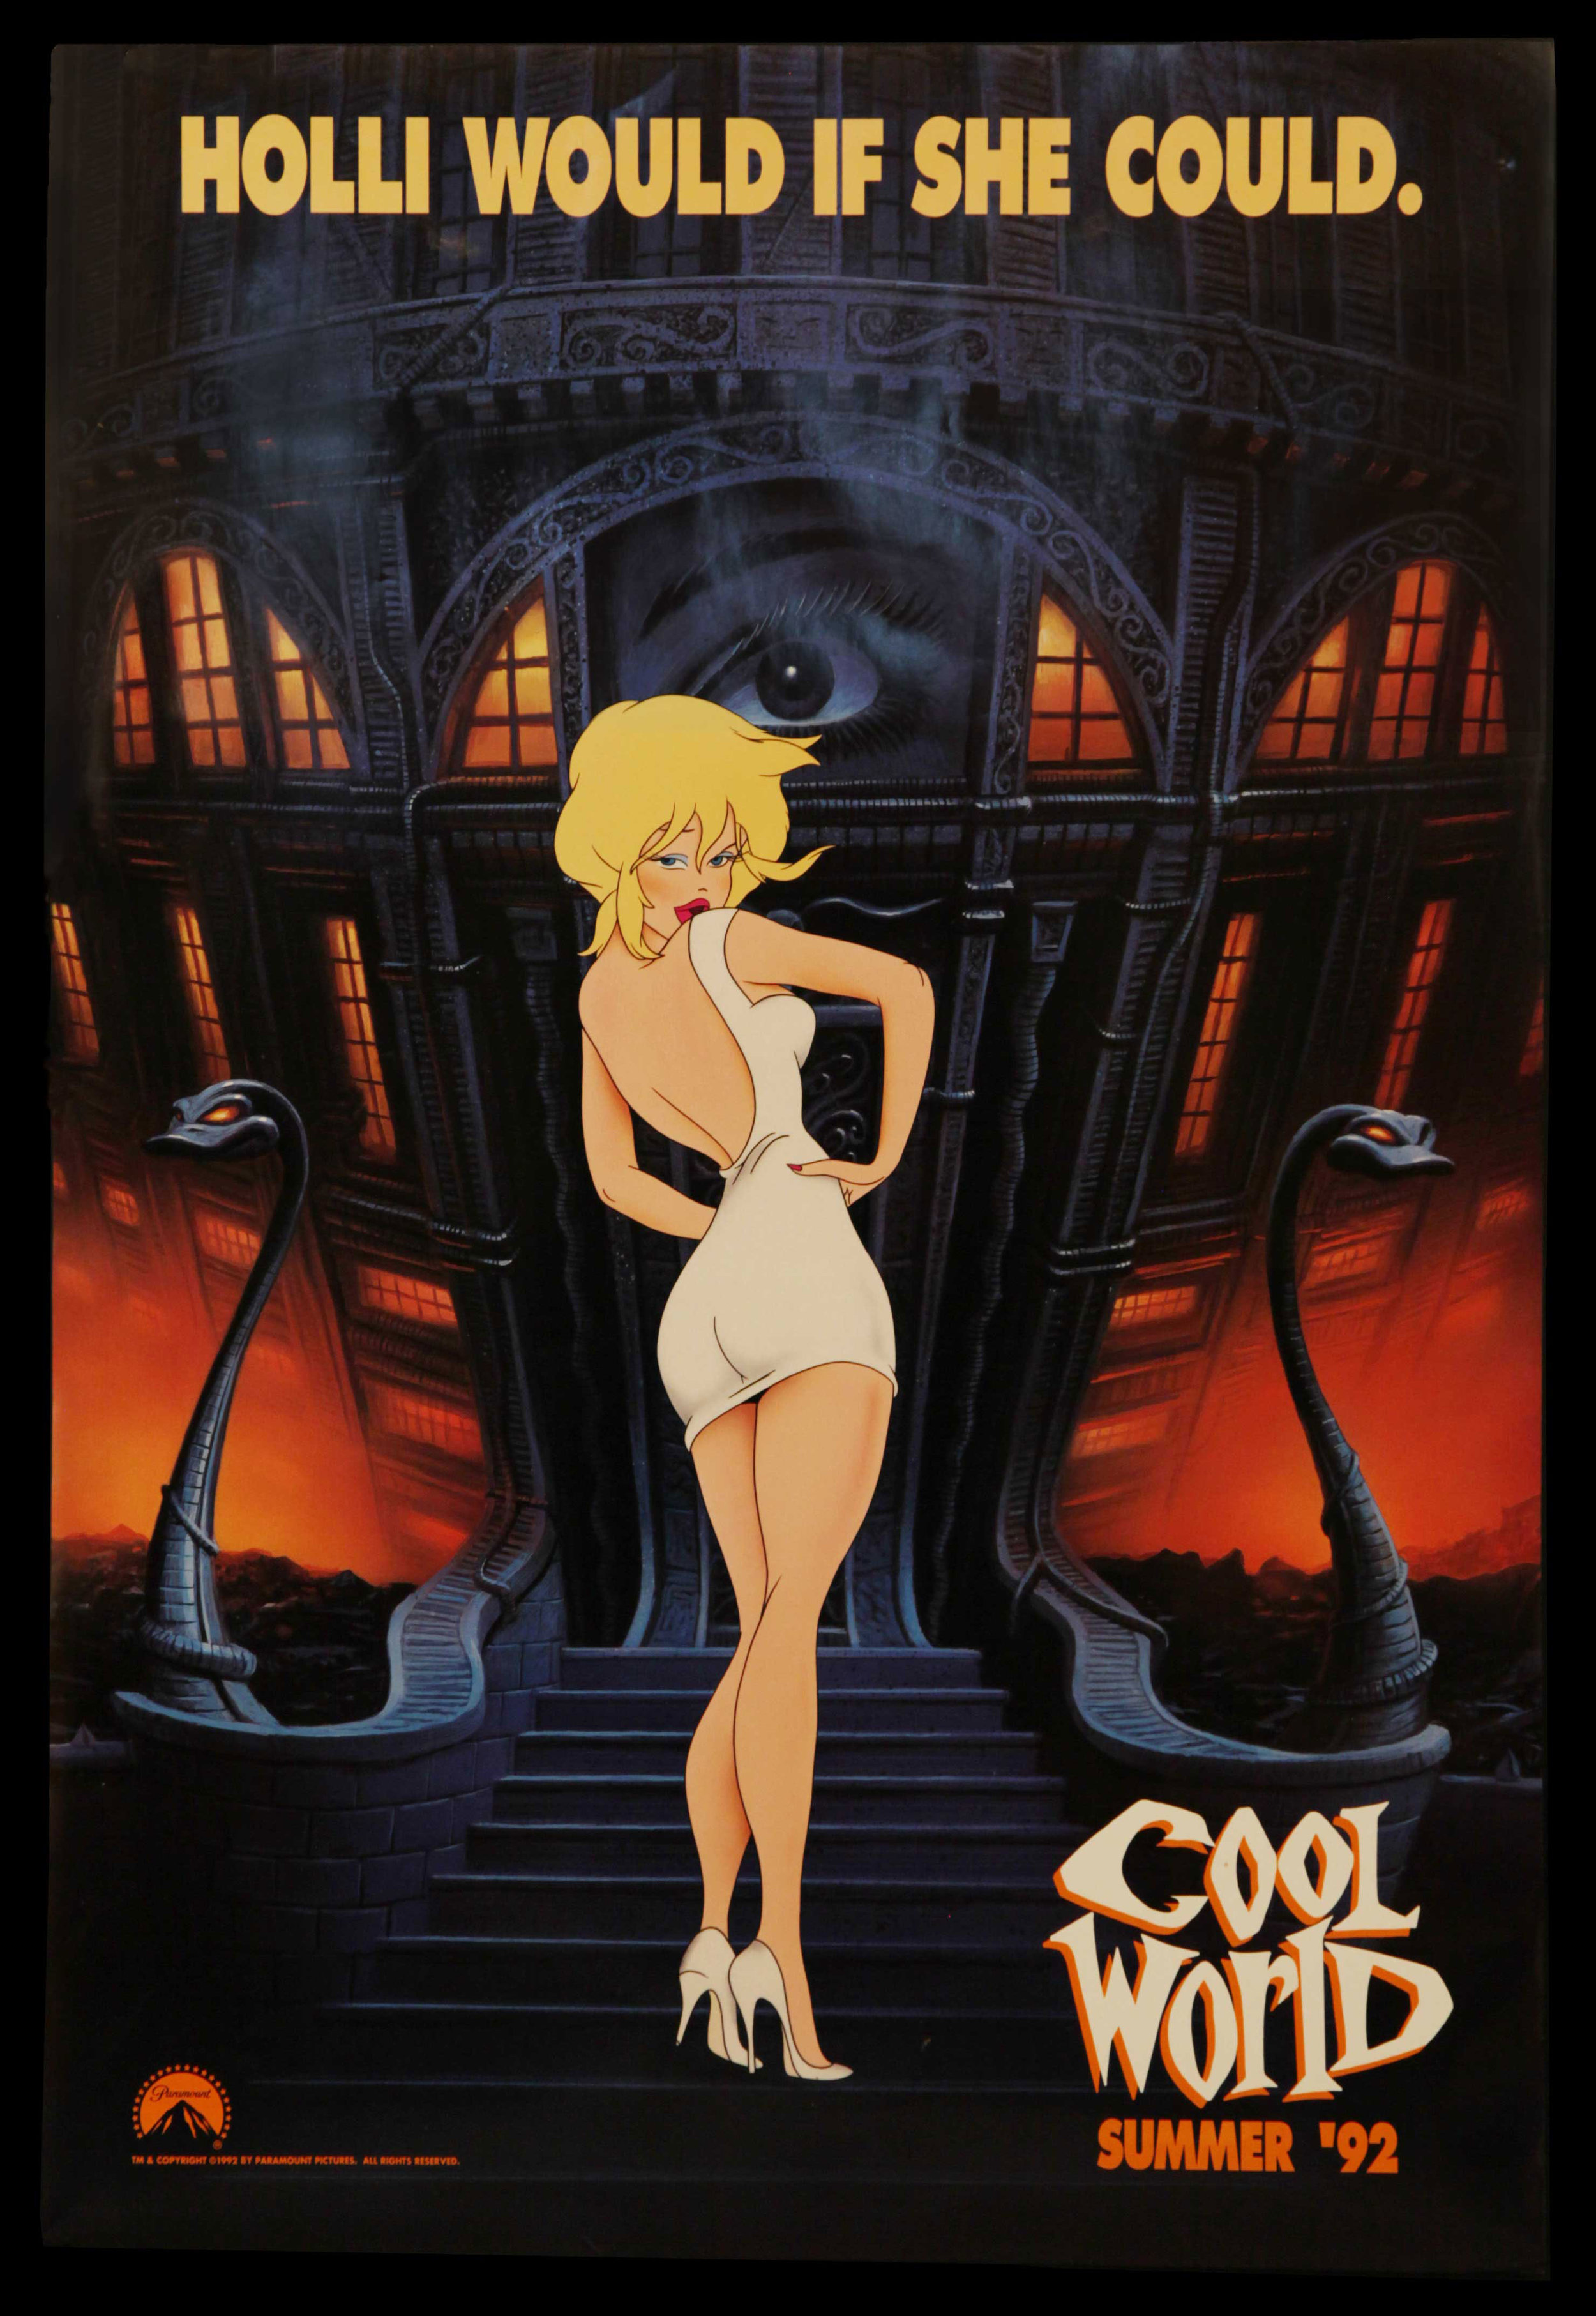 Cool World (1/2) (1992)